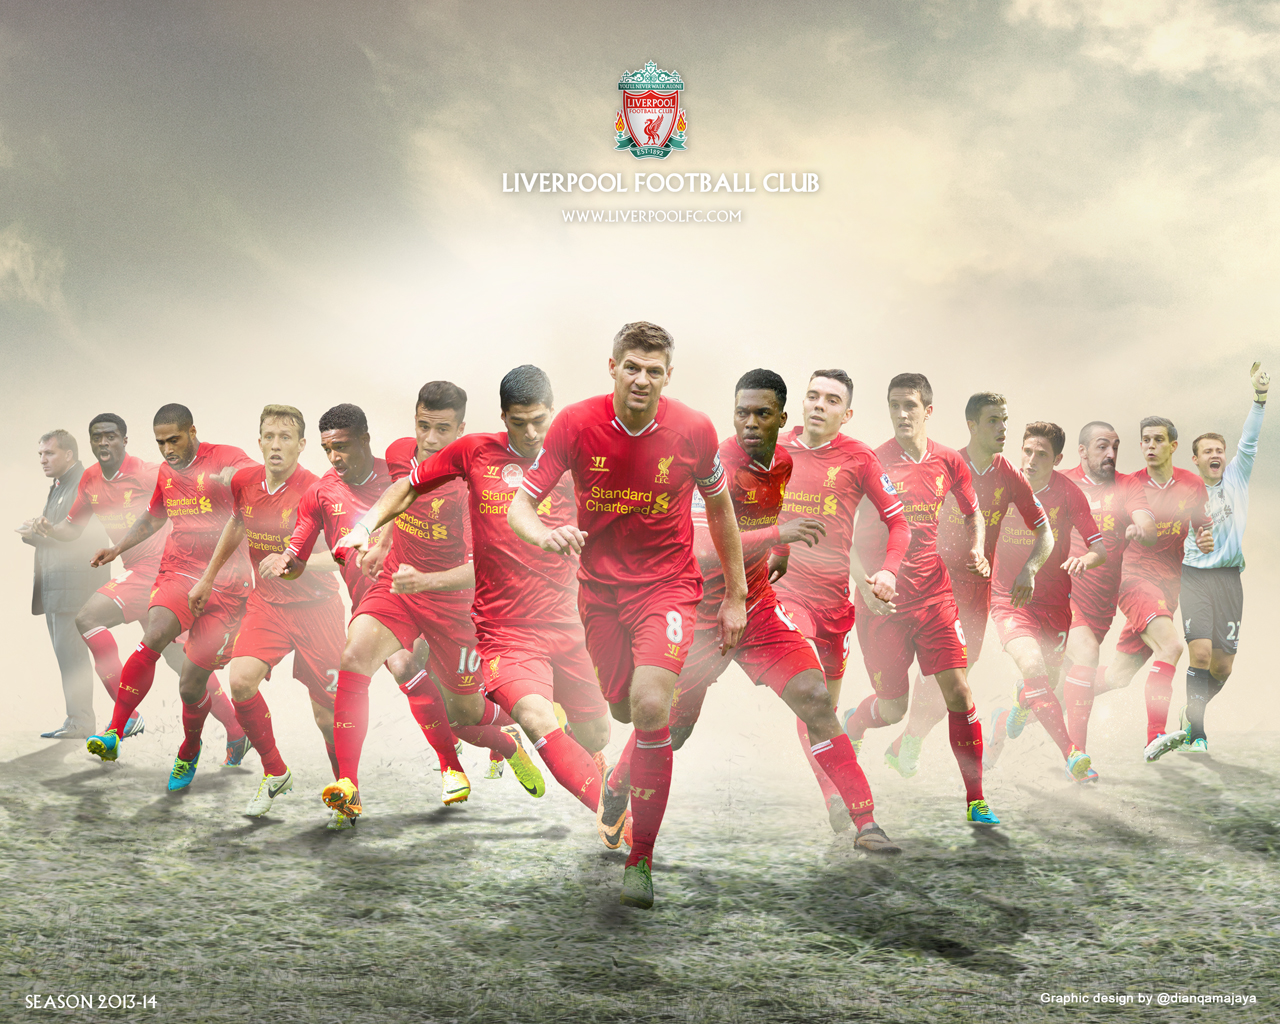 liverpool football club desktop wallpapers